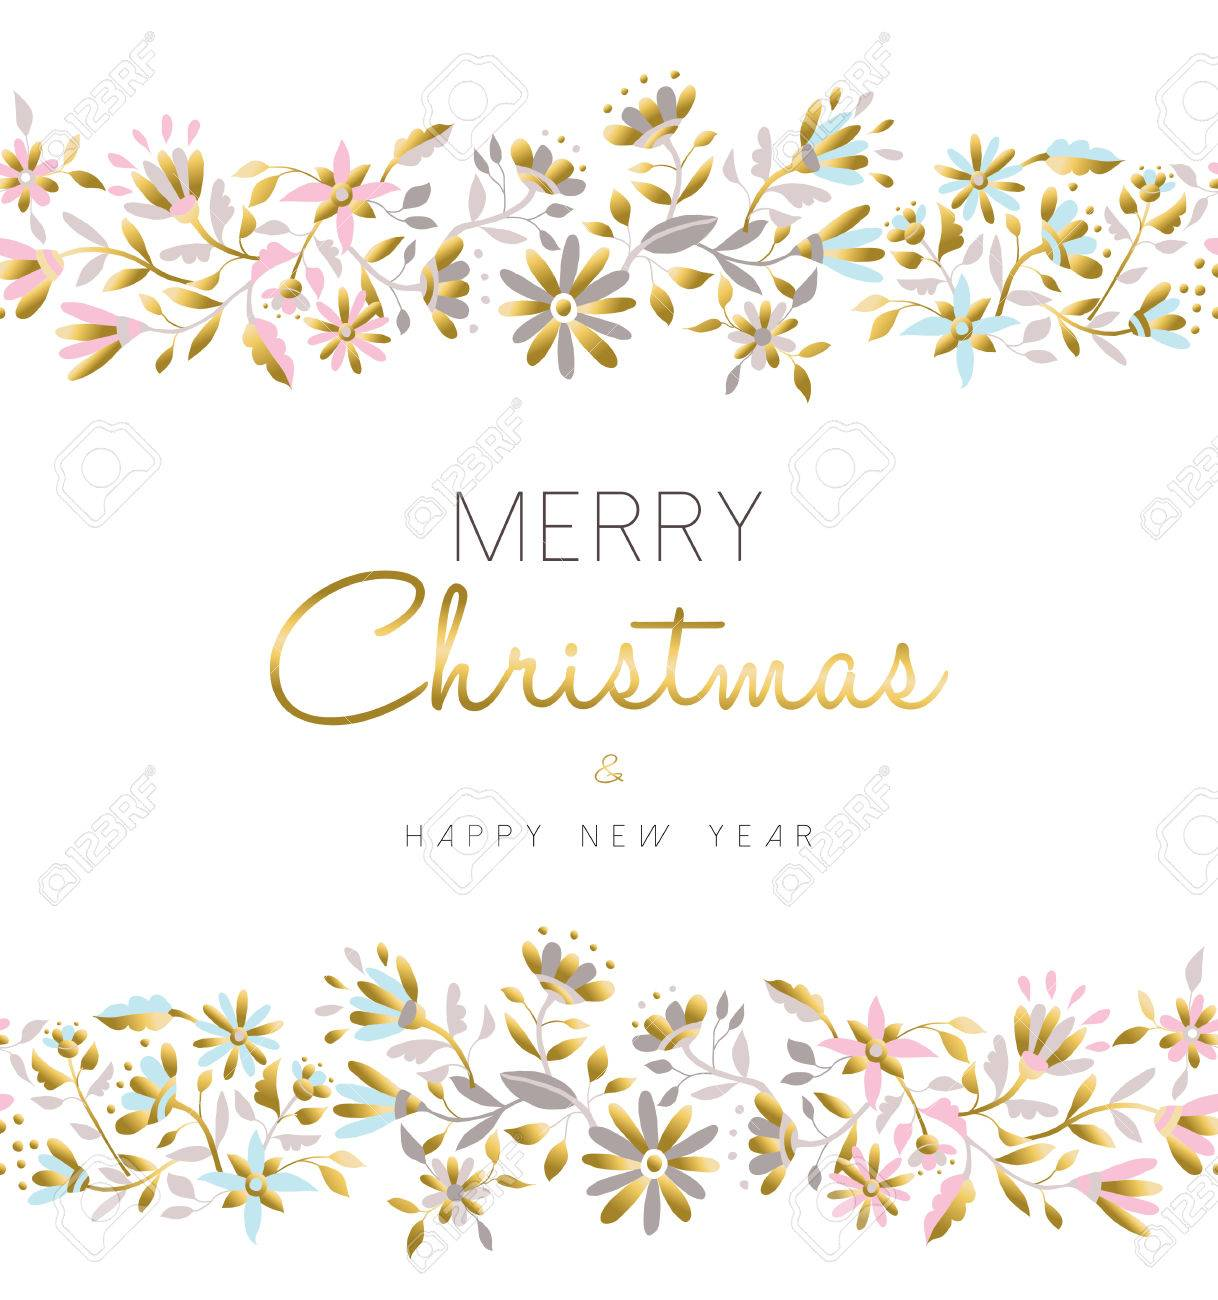 merry christmas and happy new year floral seamless pattern background in gold pastel color with flower